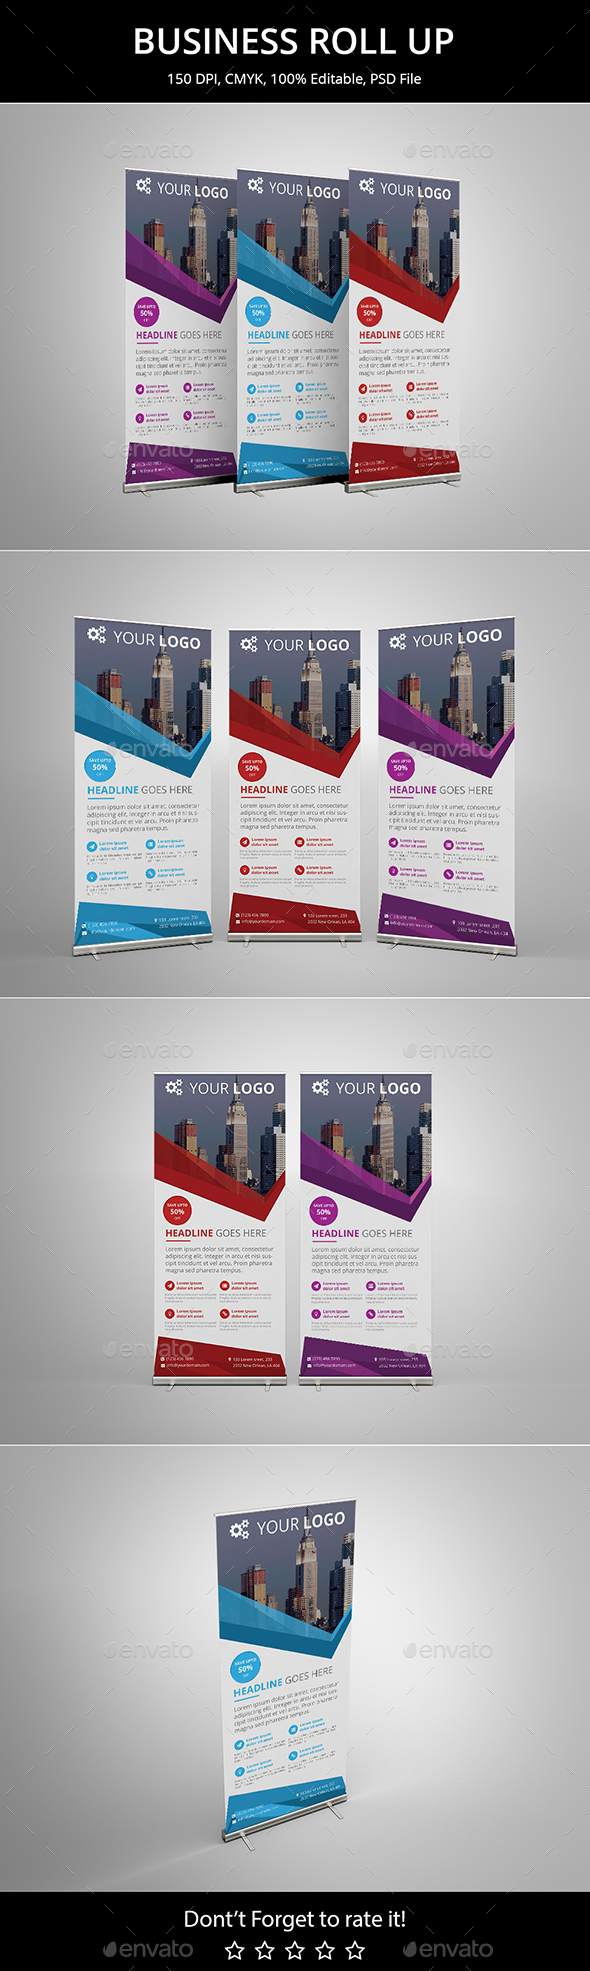 Business Roll up v6 - Signage Print Templates